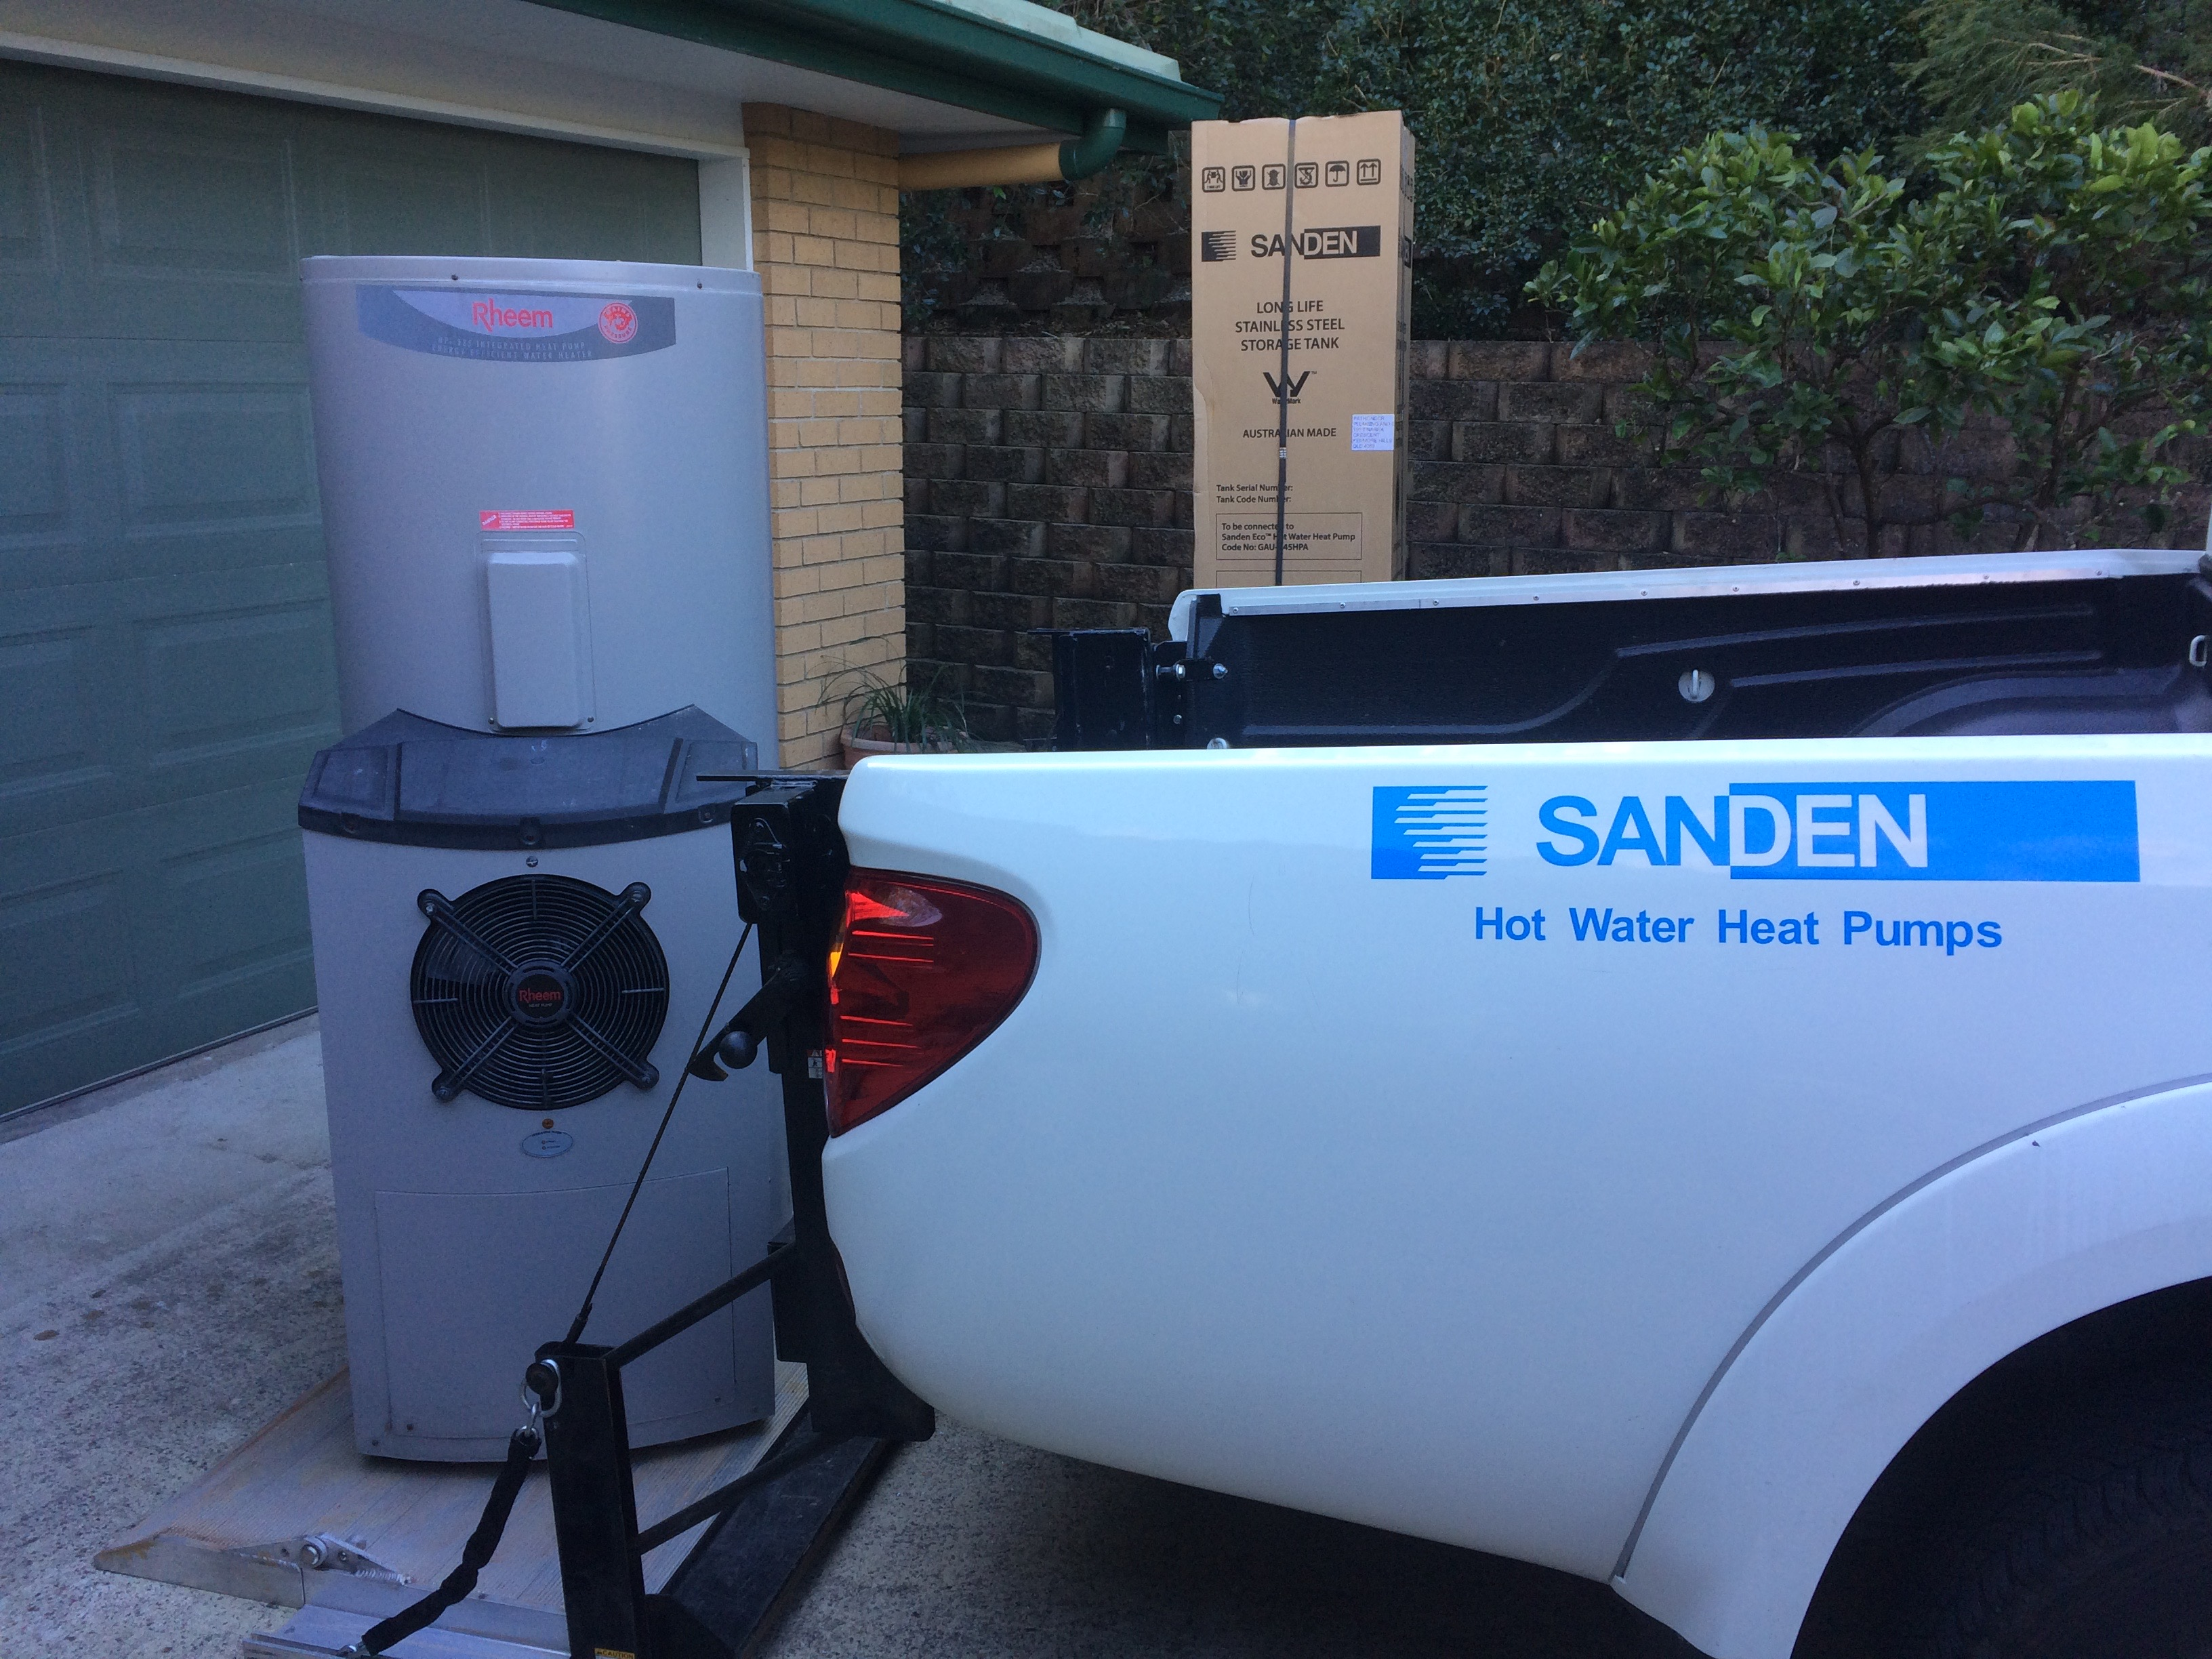 Emergency Hot Water Replacement Brisbane Pathfinder plumbing we will have you new hot water system fitted with a new efficient system.  We can do extensive onsite repairs to your existing hot water